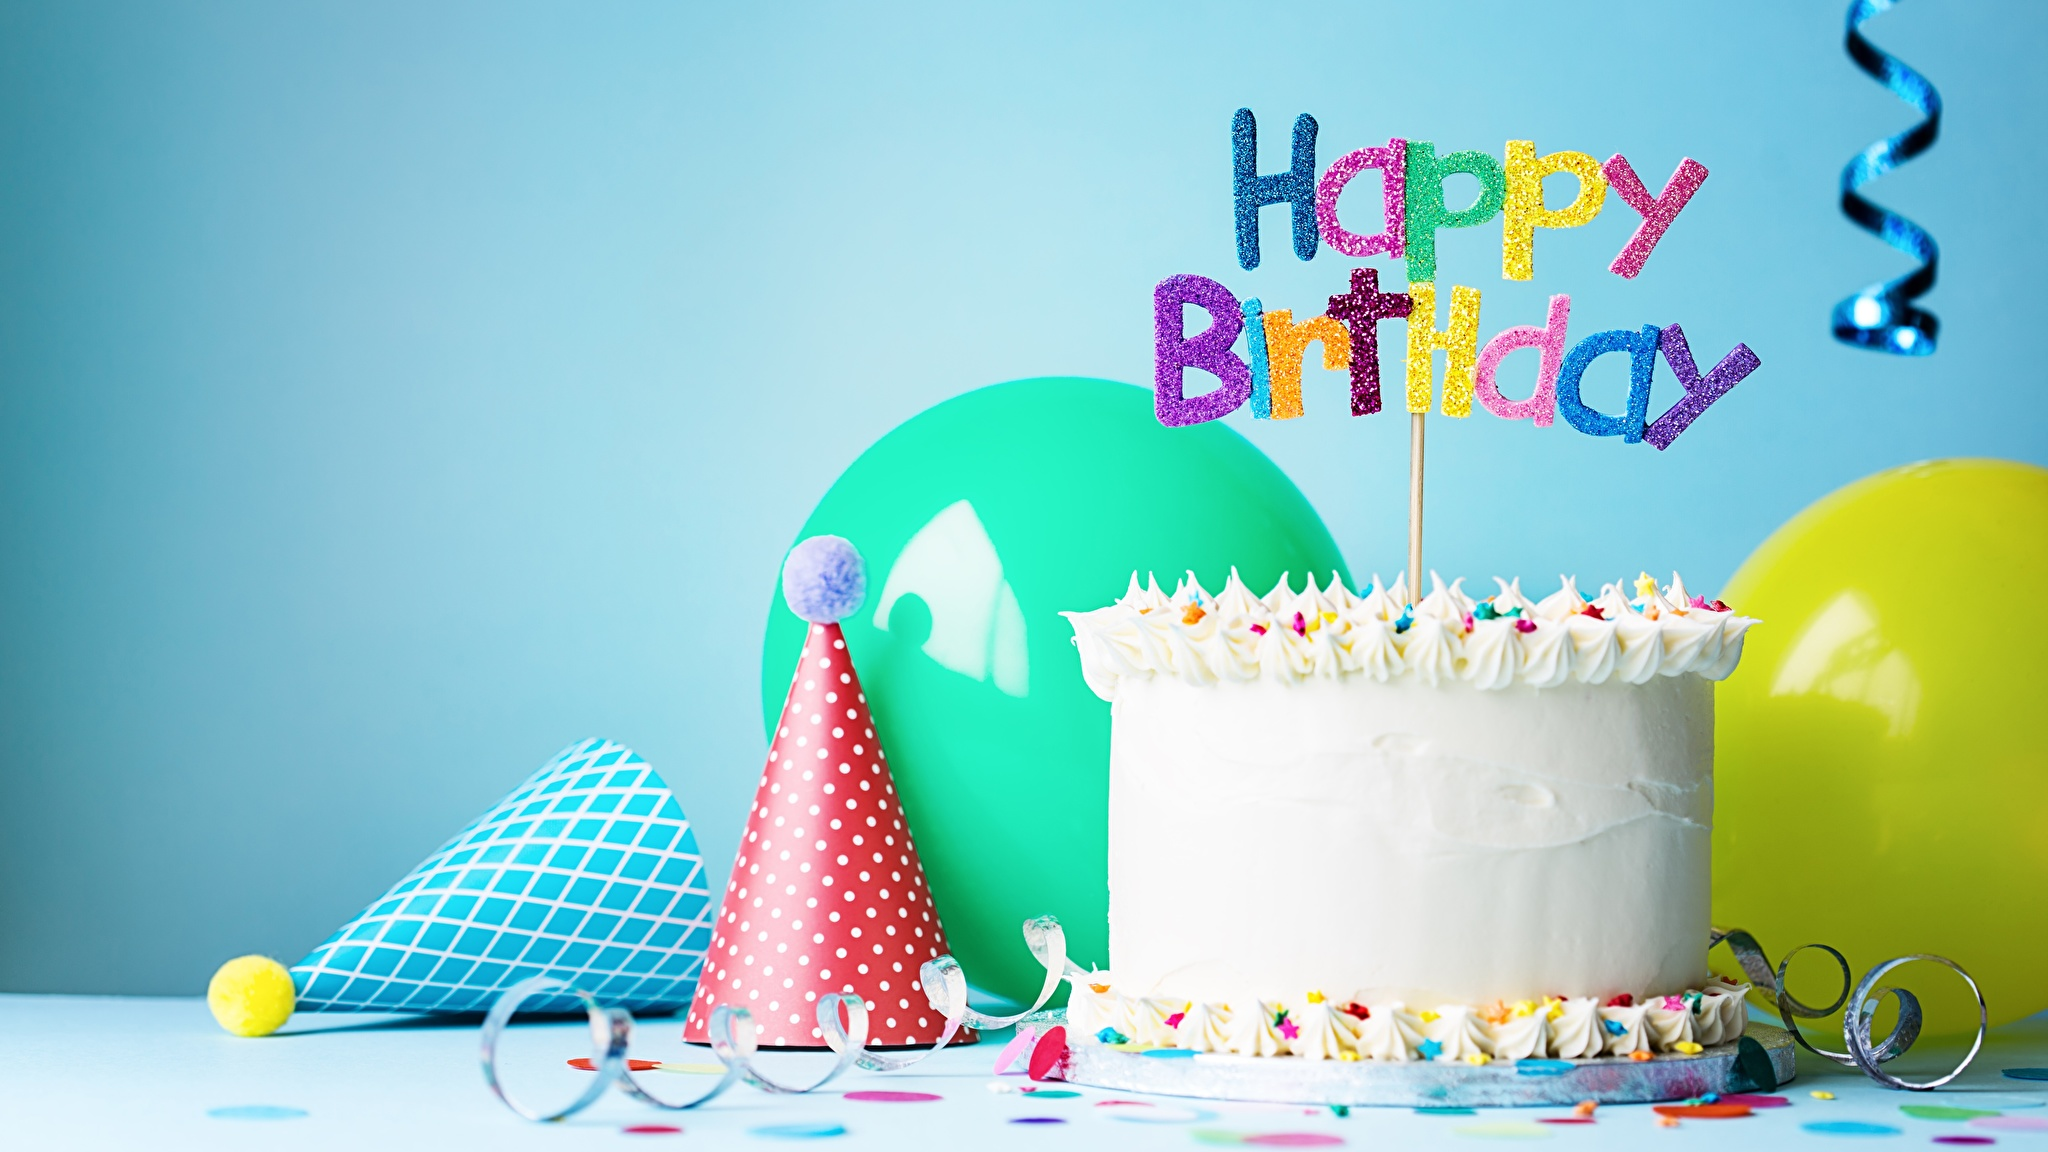 Birthday Wallpapers  Full HD wallpaper search